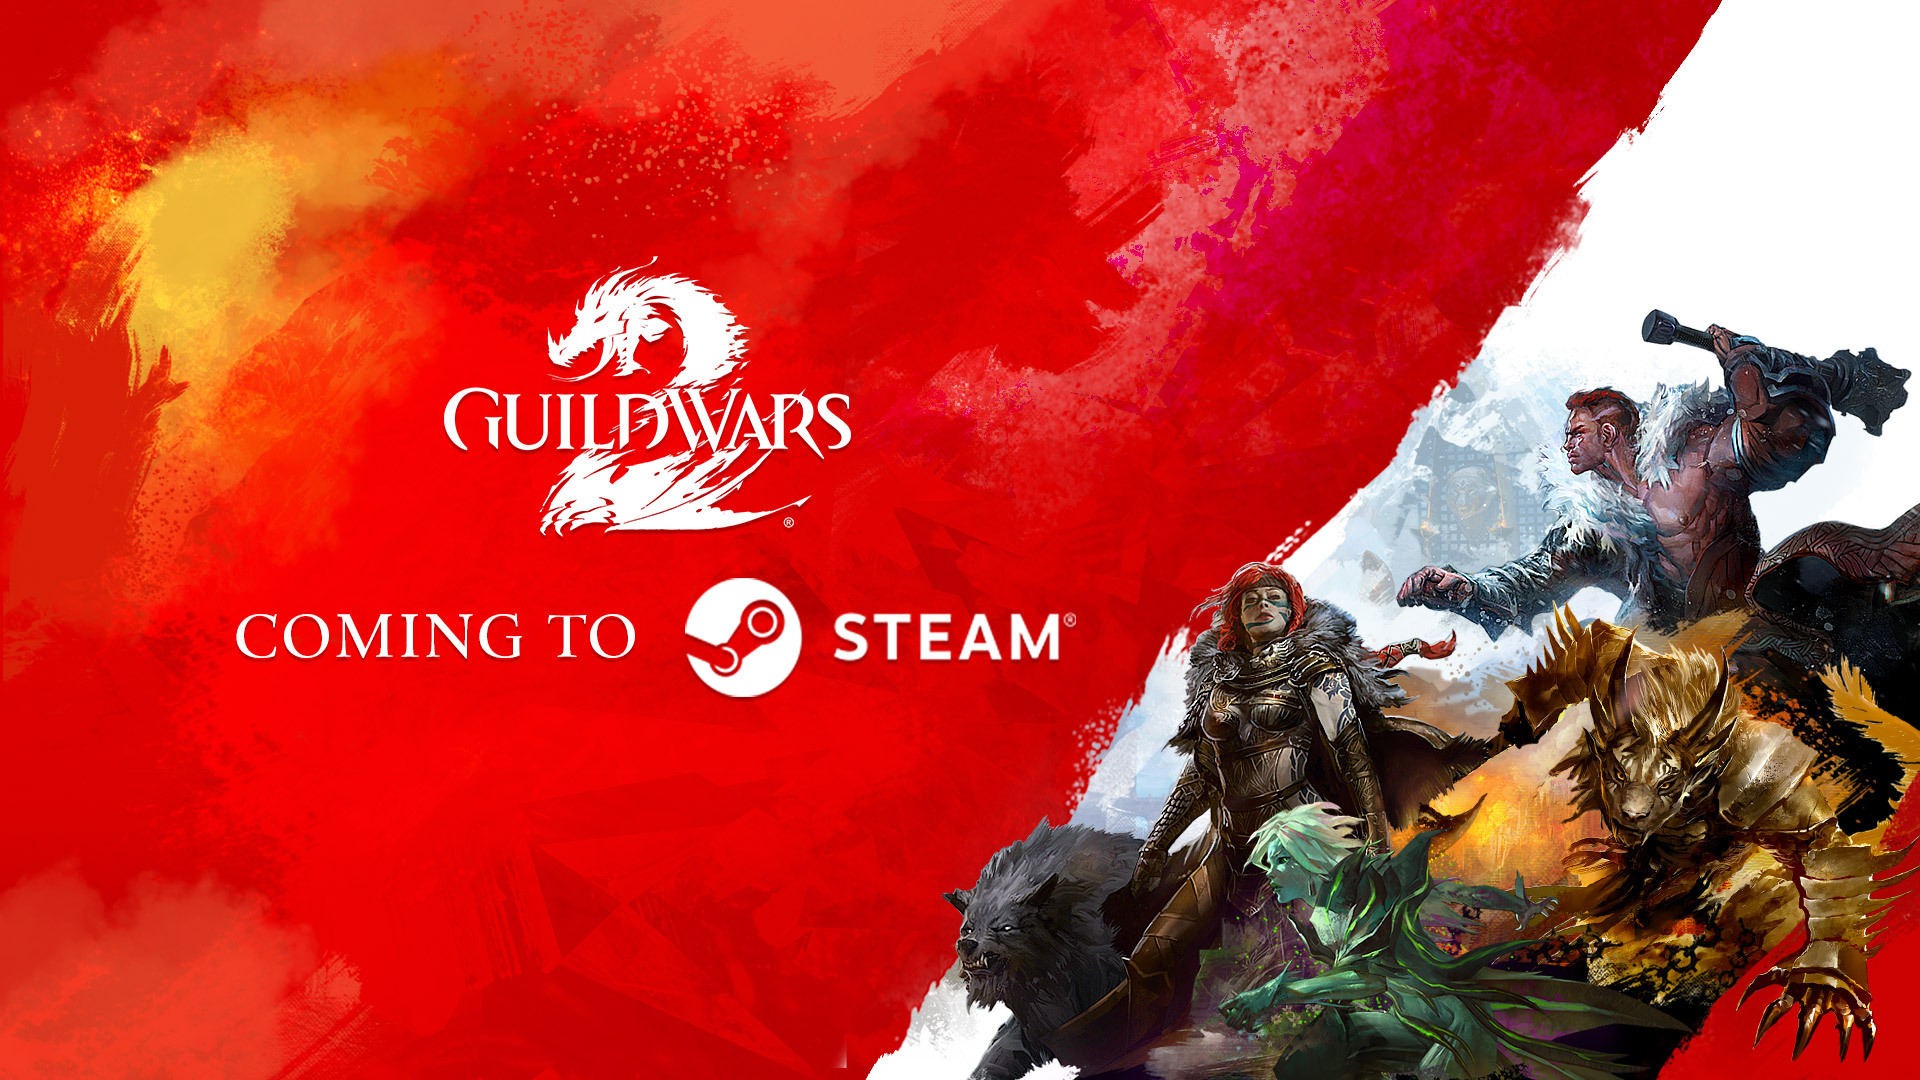 gw2 dating guild)